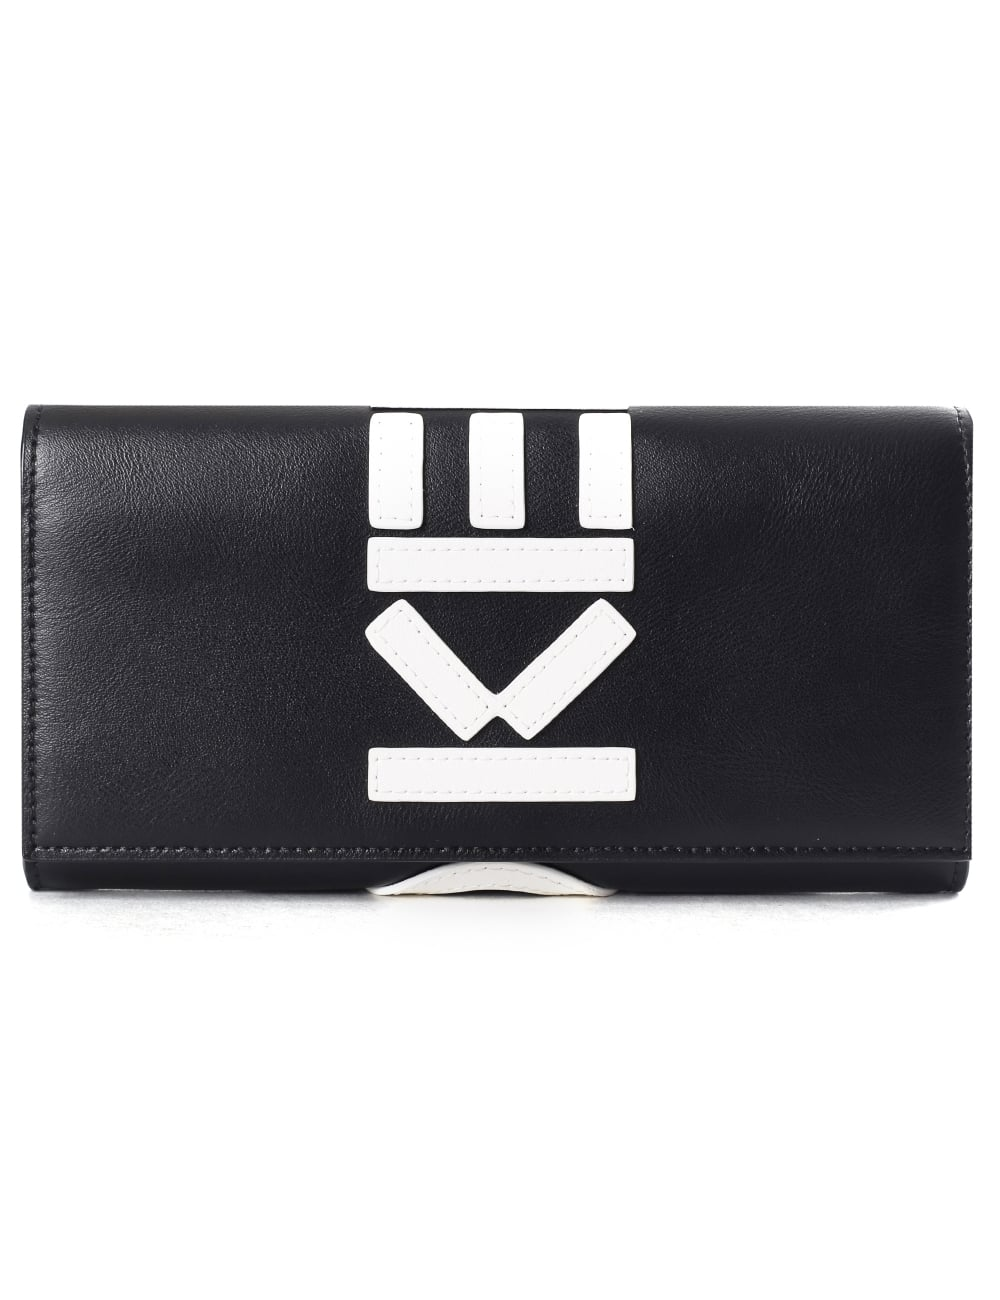 ef0913d7 Kenzo Women's Continental Wallet Black